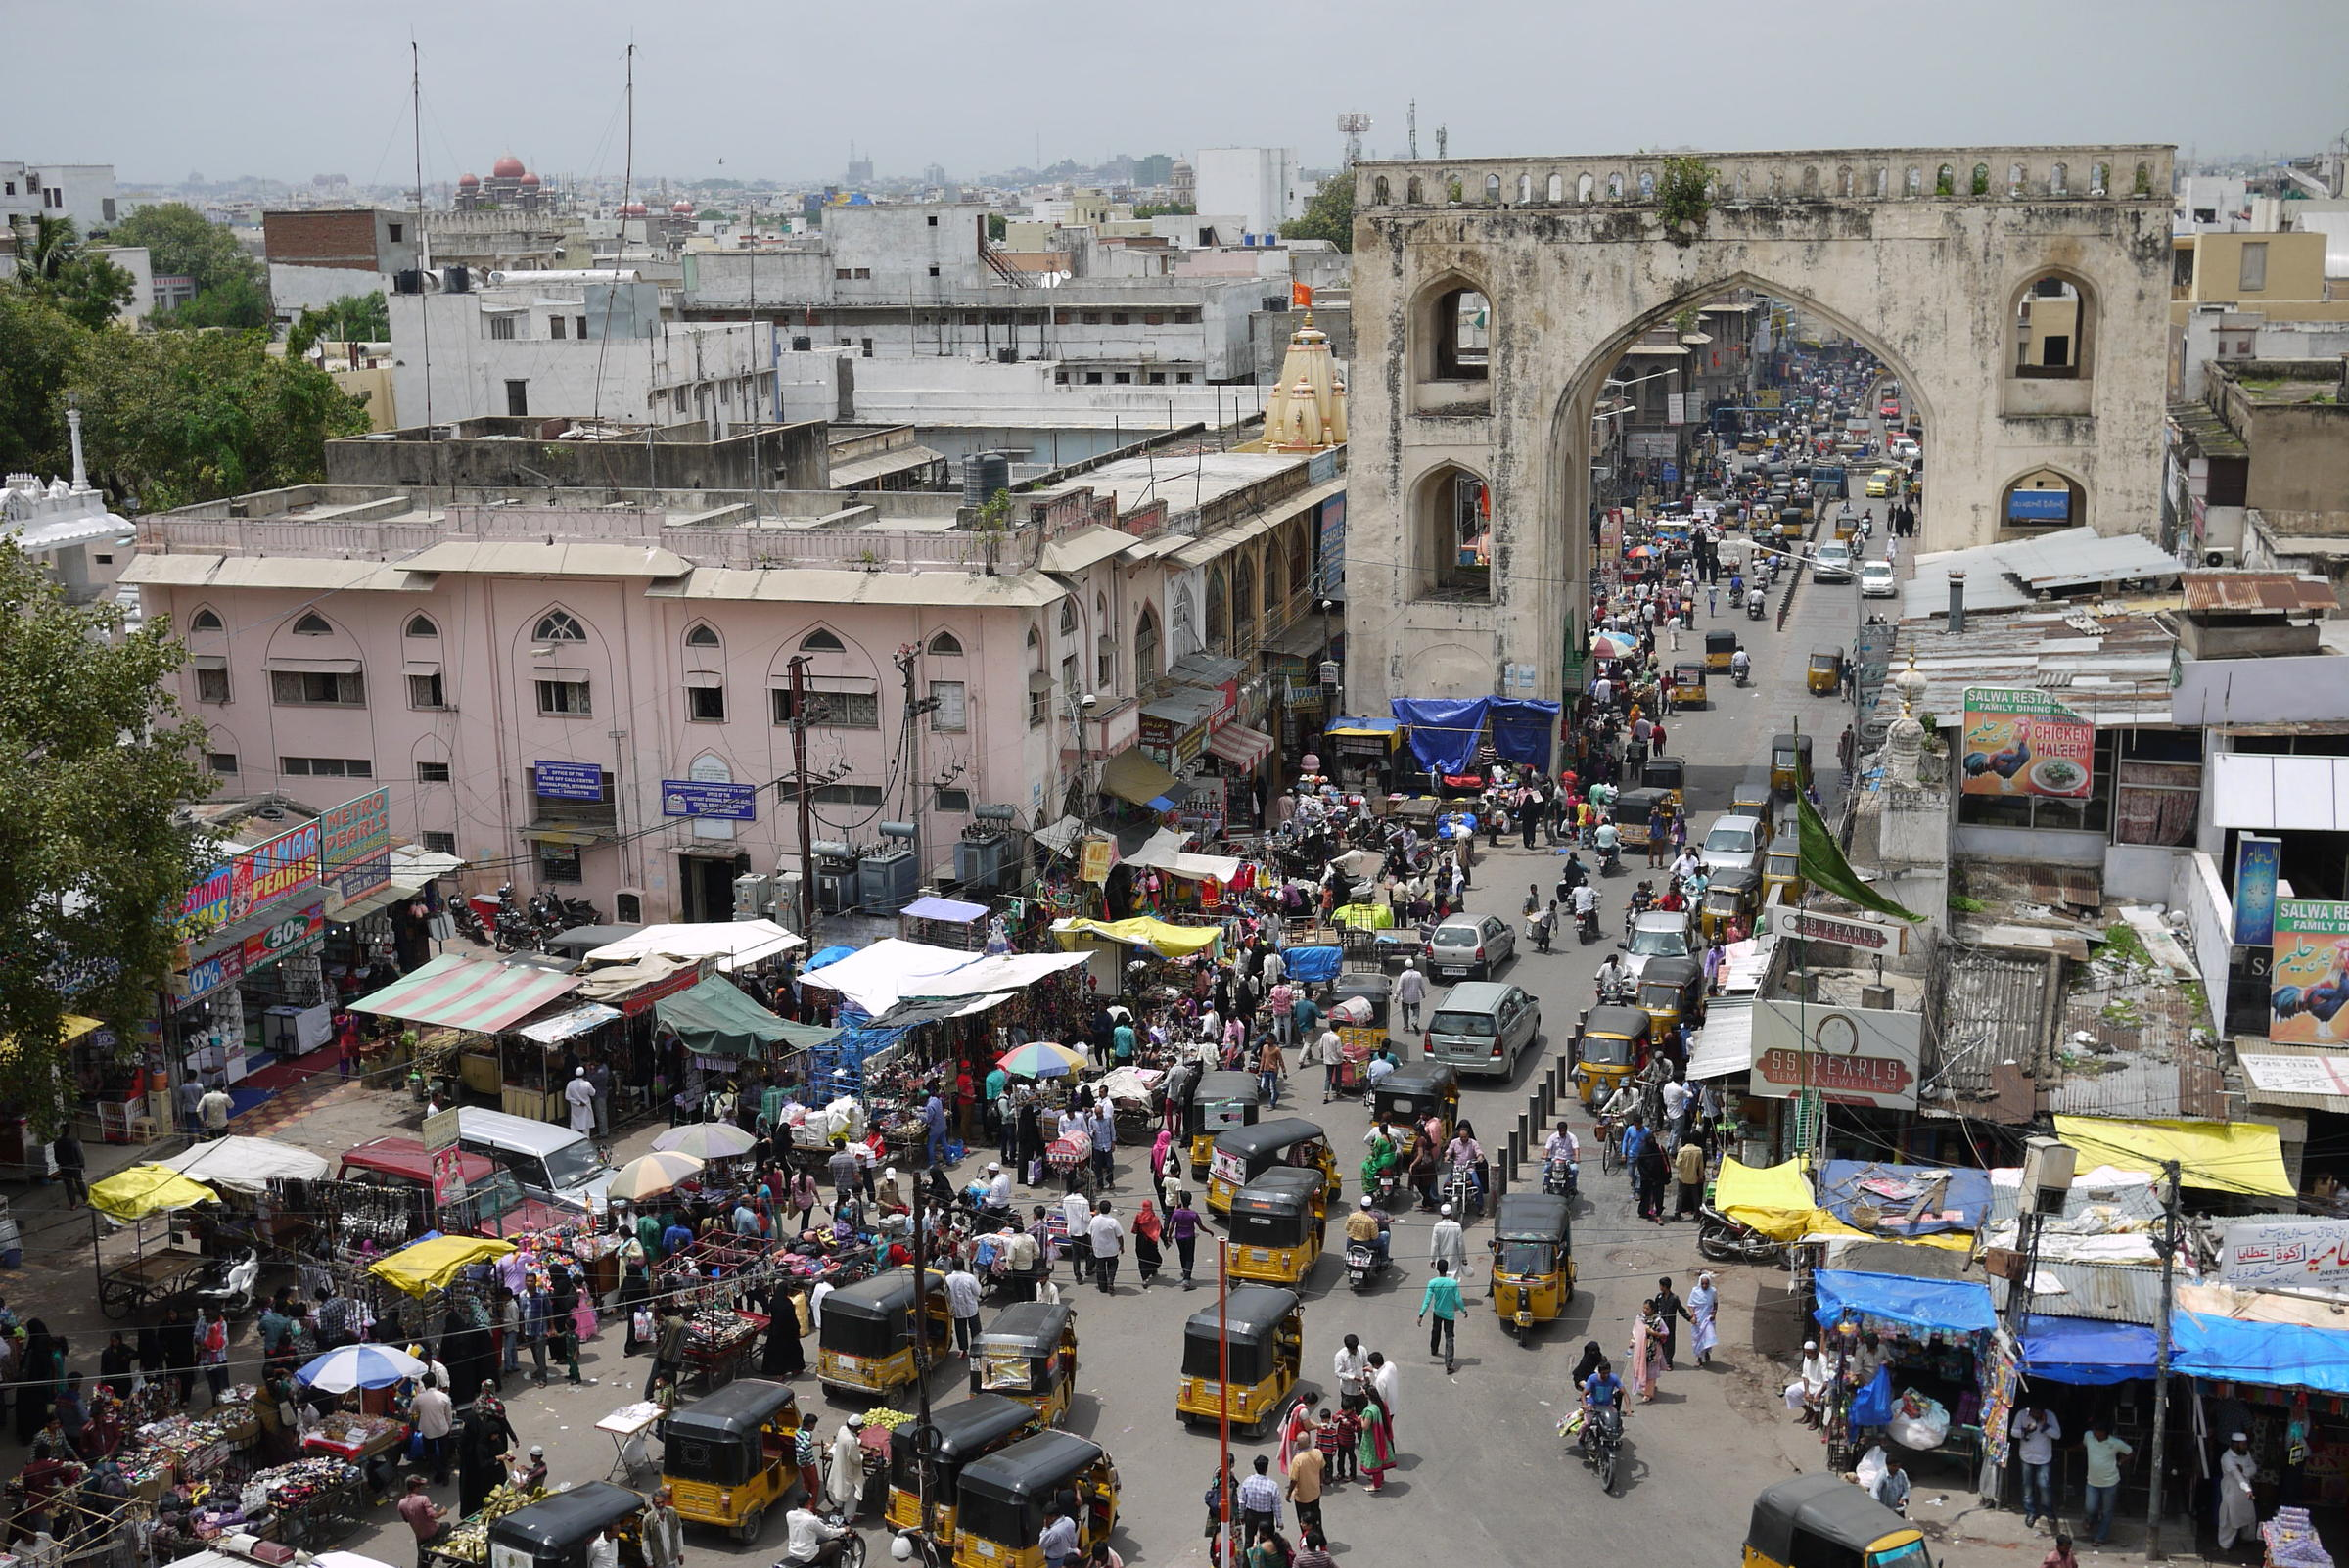 Hyderabad India  city photo : Hyderabad, India: Seattle's Tech Sister Of The East | KUOW News and ...